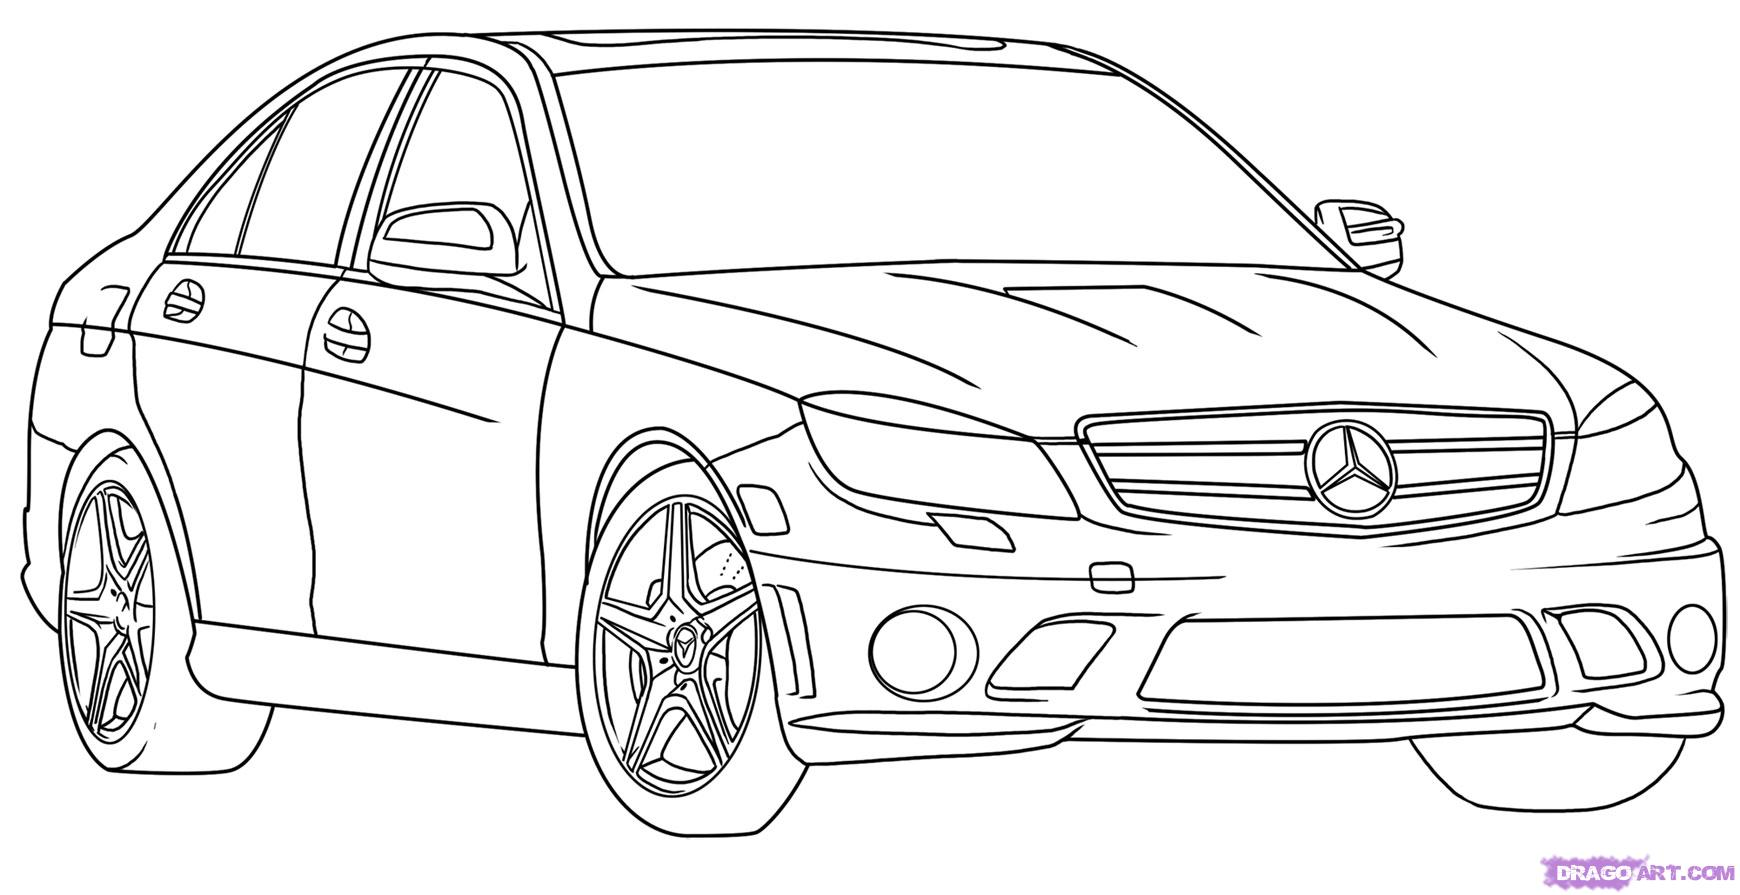 Car Drawings In Pencil, Wallpapers and Photos In HD Quality 1740x895